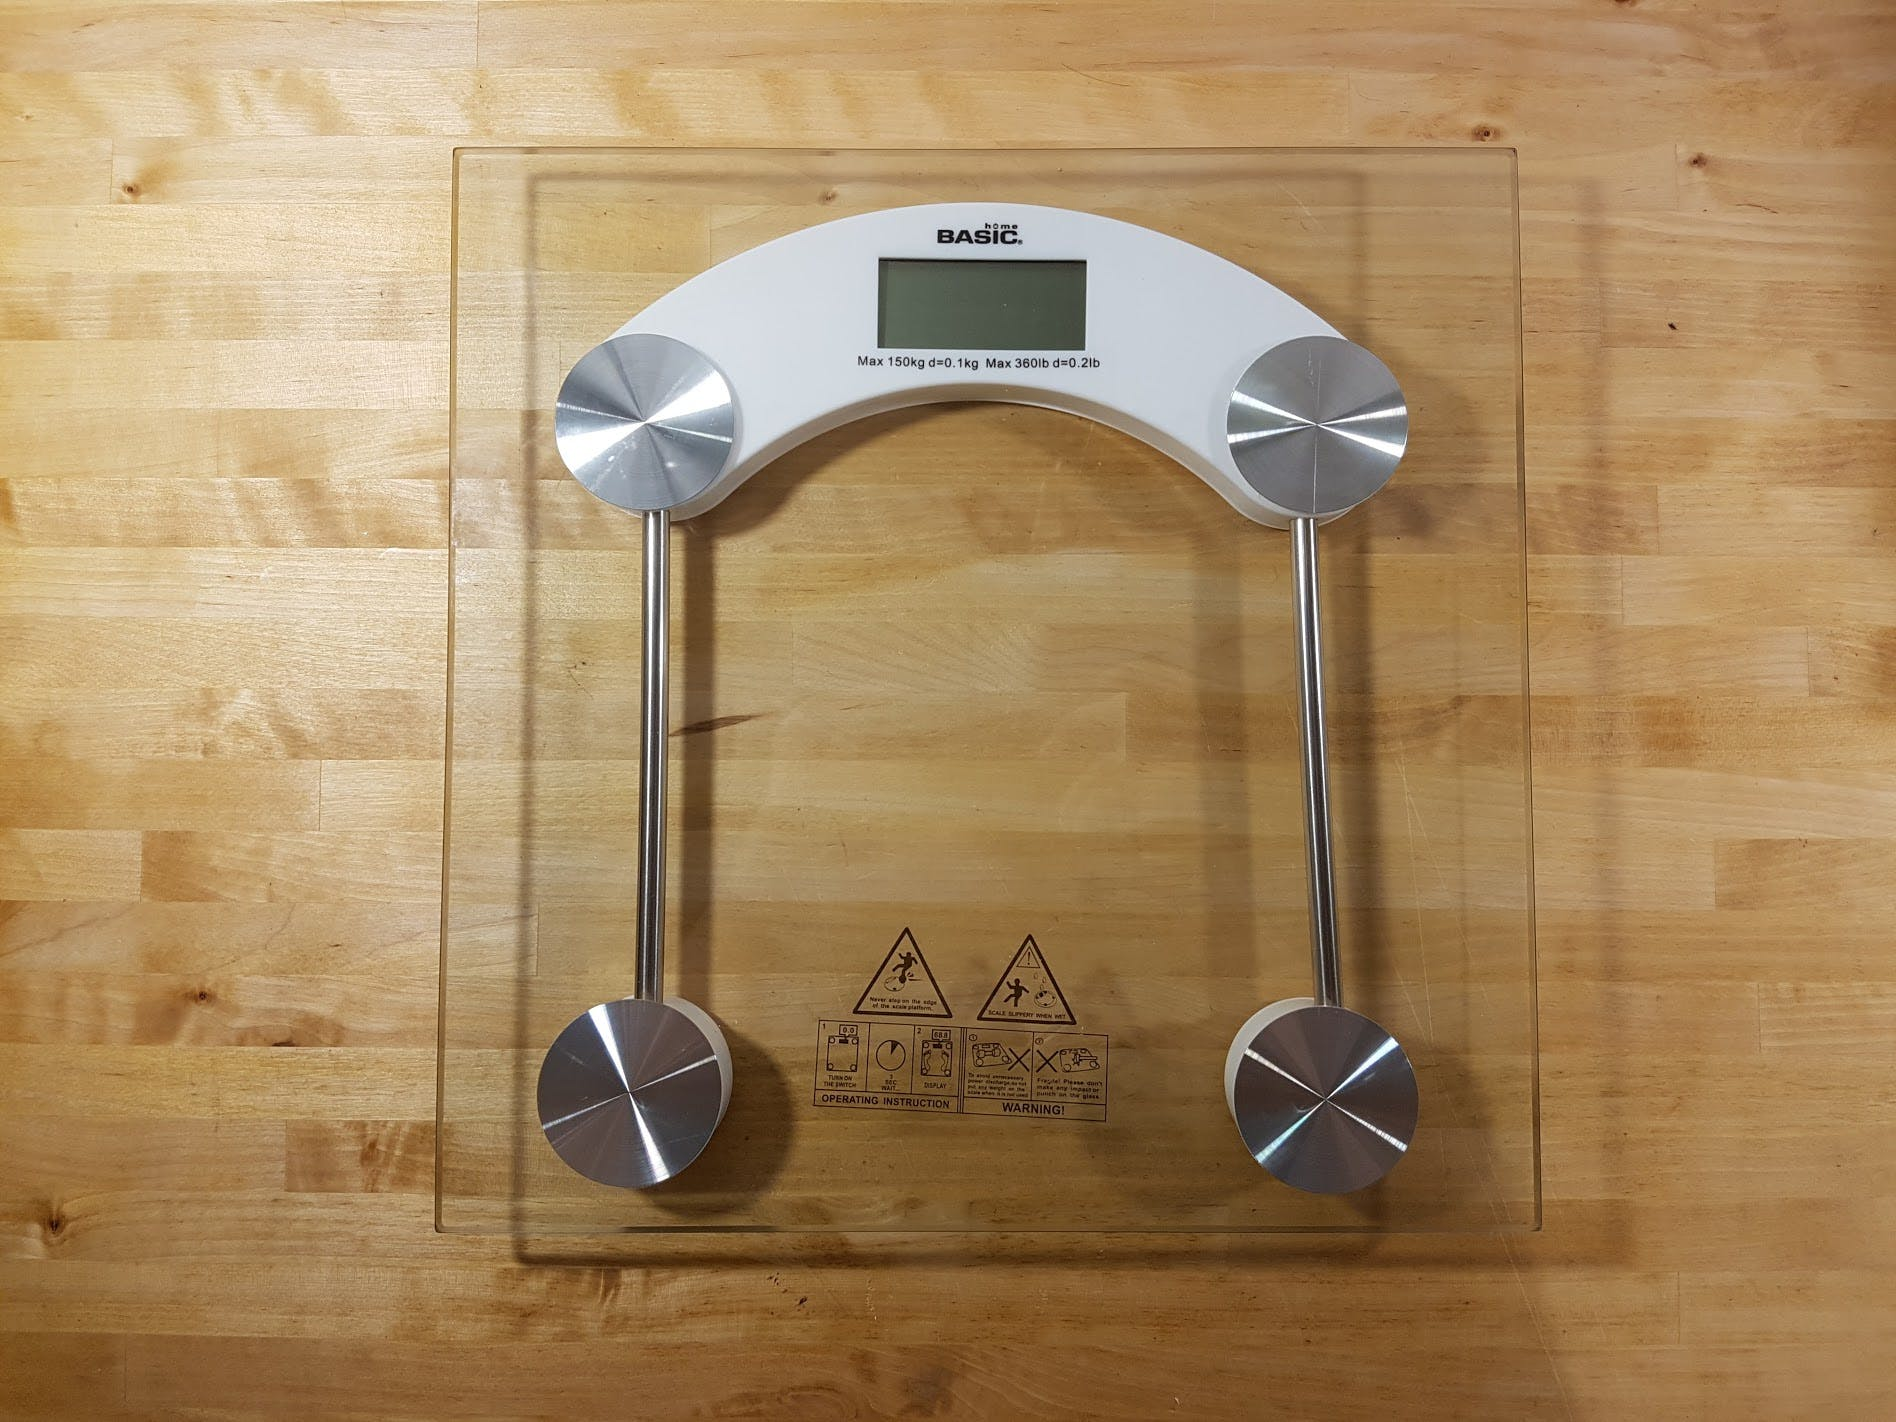 Front of the scale